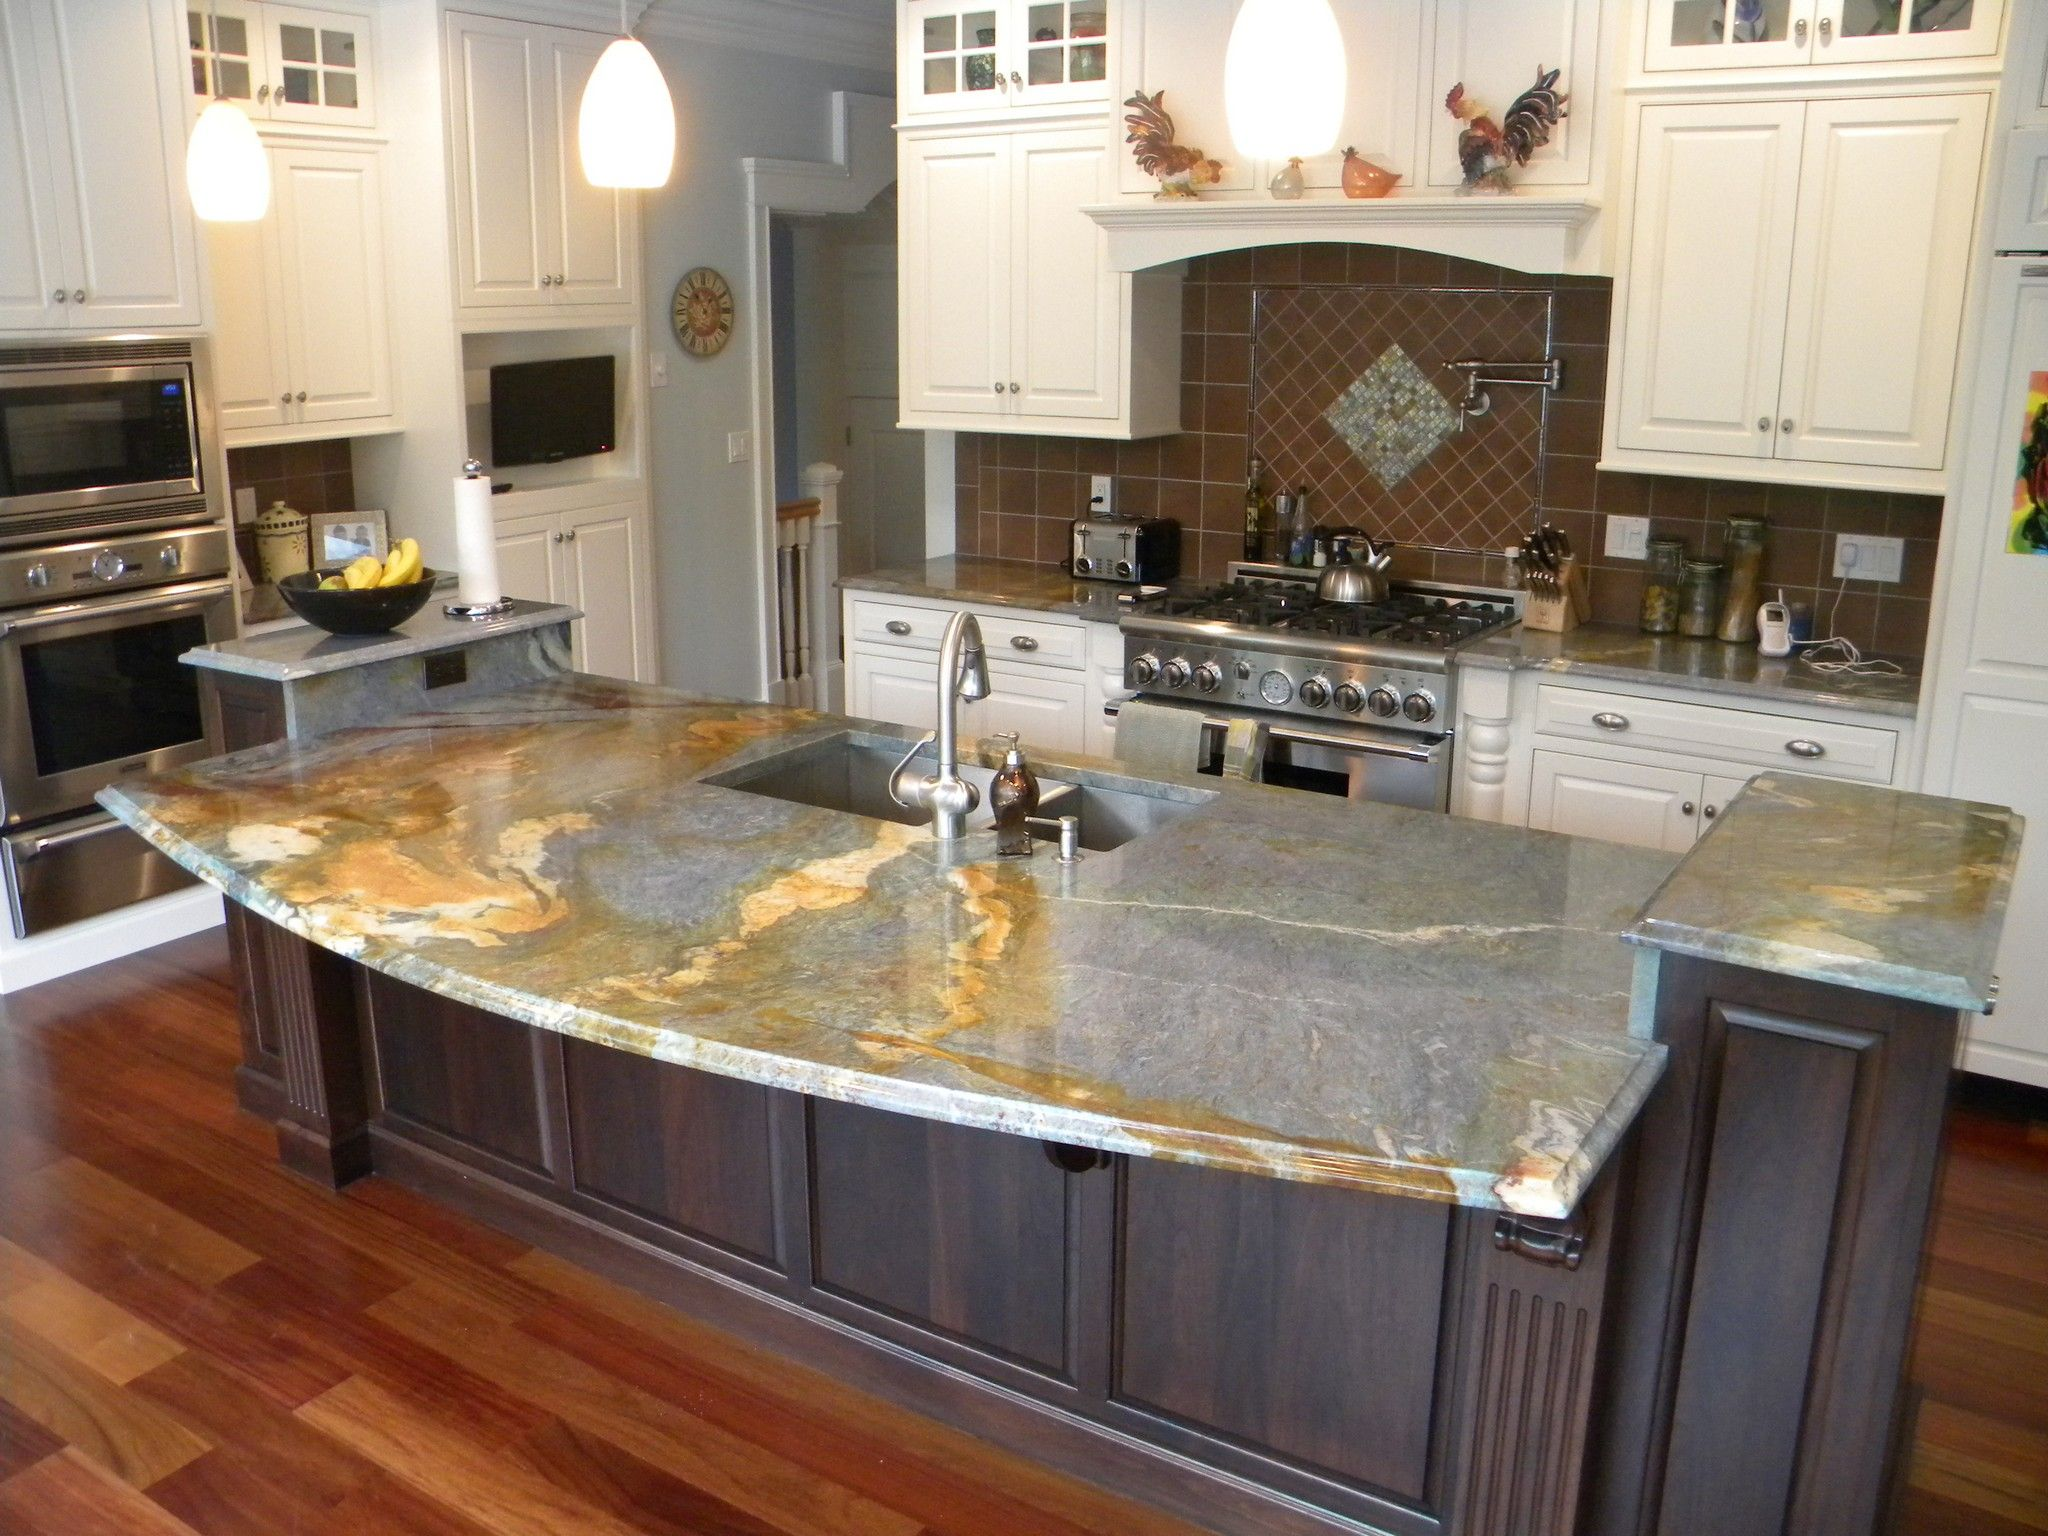 Granite Islands Kitchen Waterfall Countertop Granite Countertops Marble Countertops